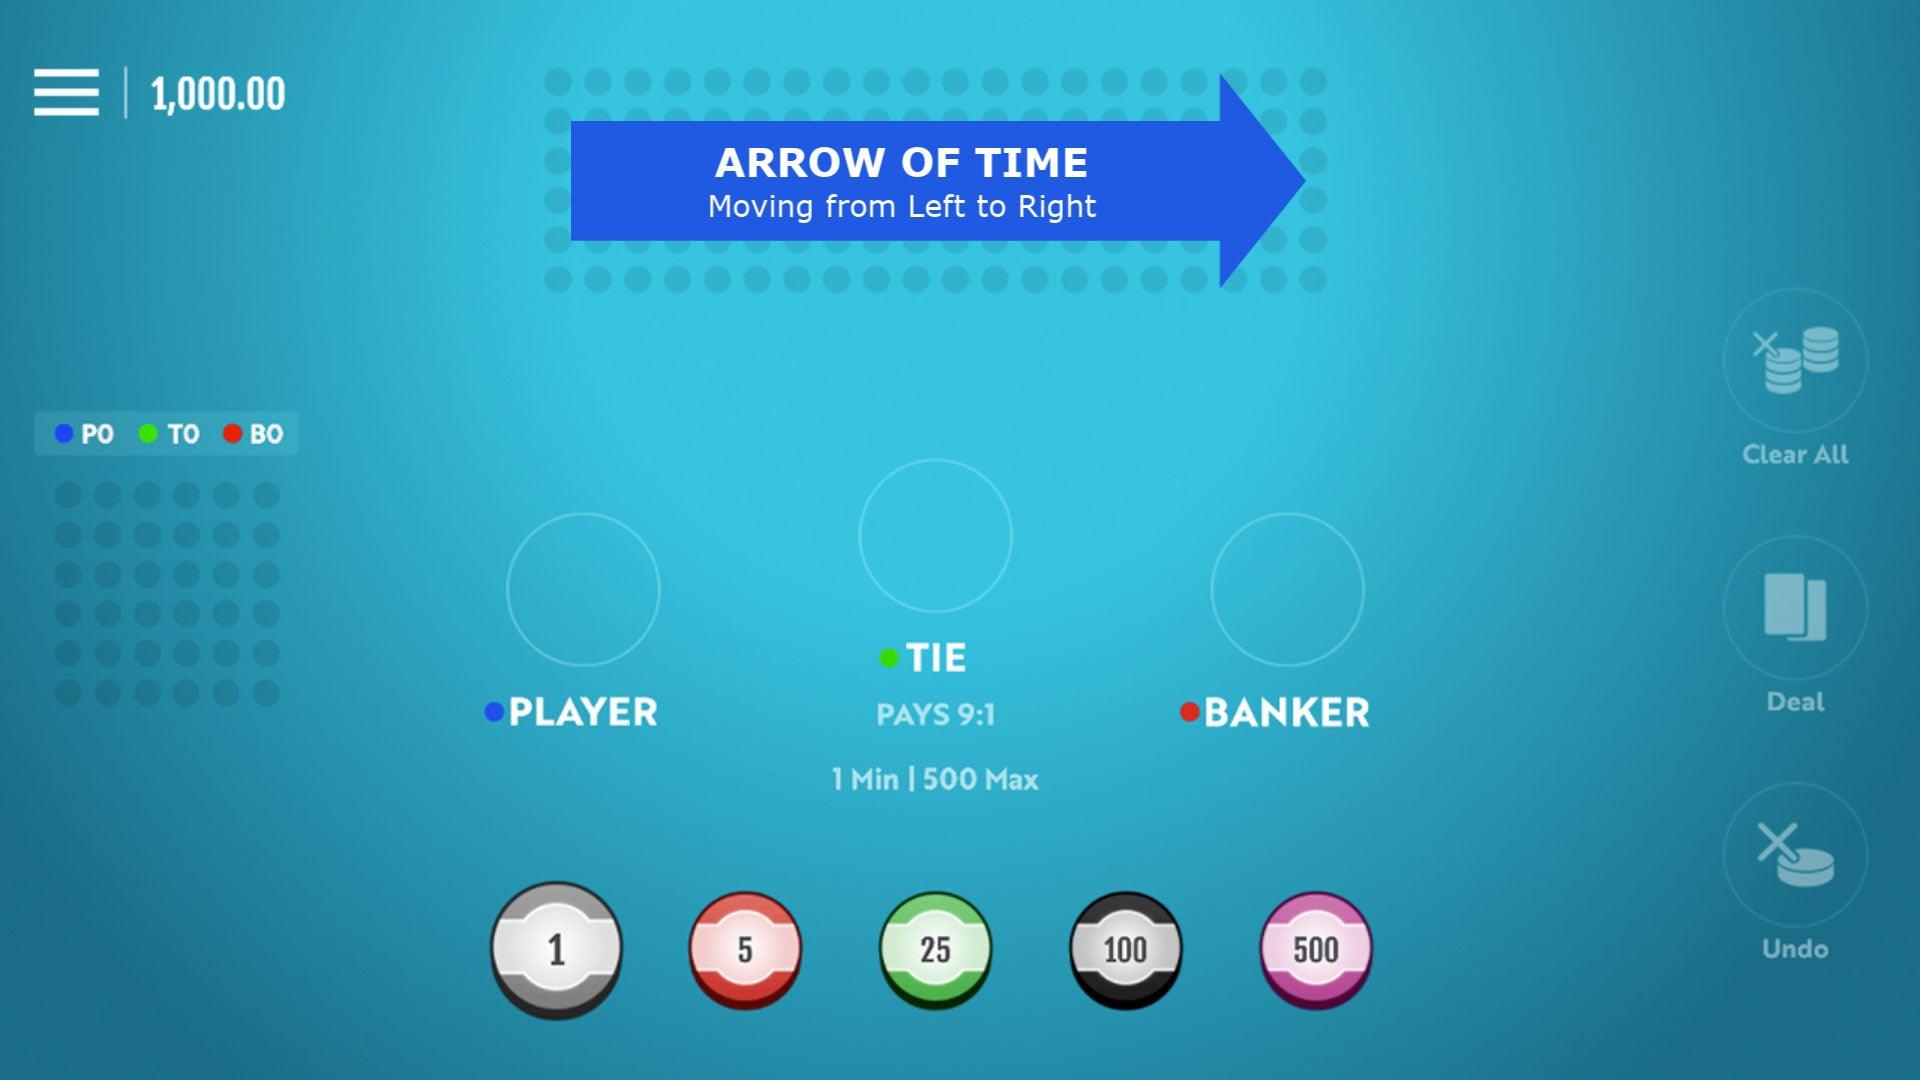 AI BANKROLL - Arrow of Time